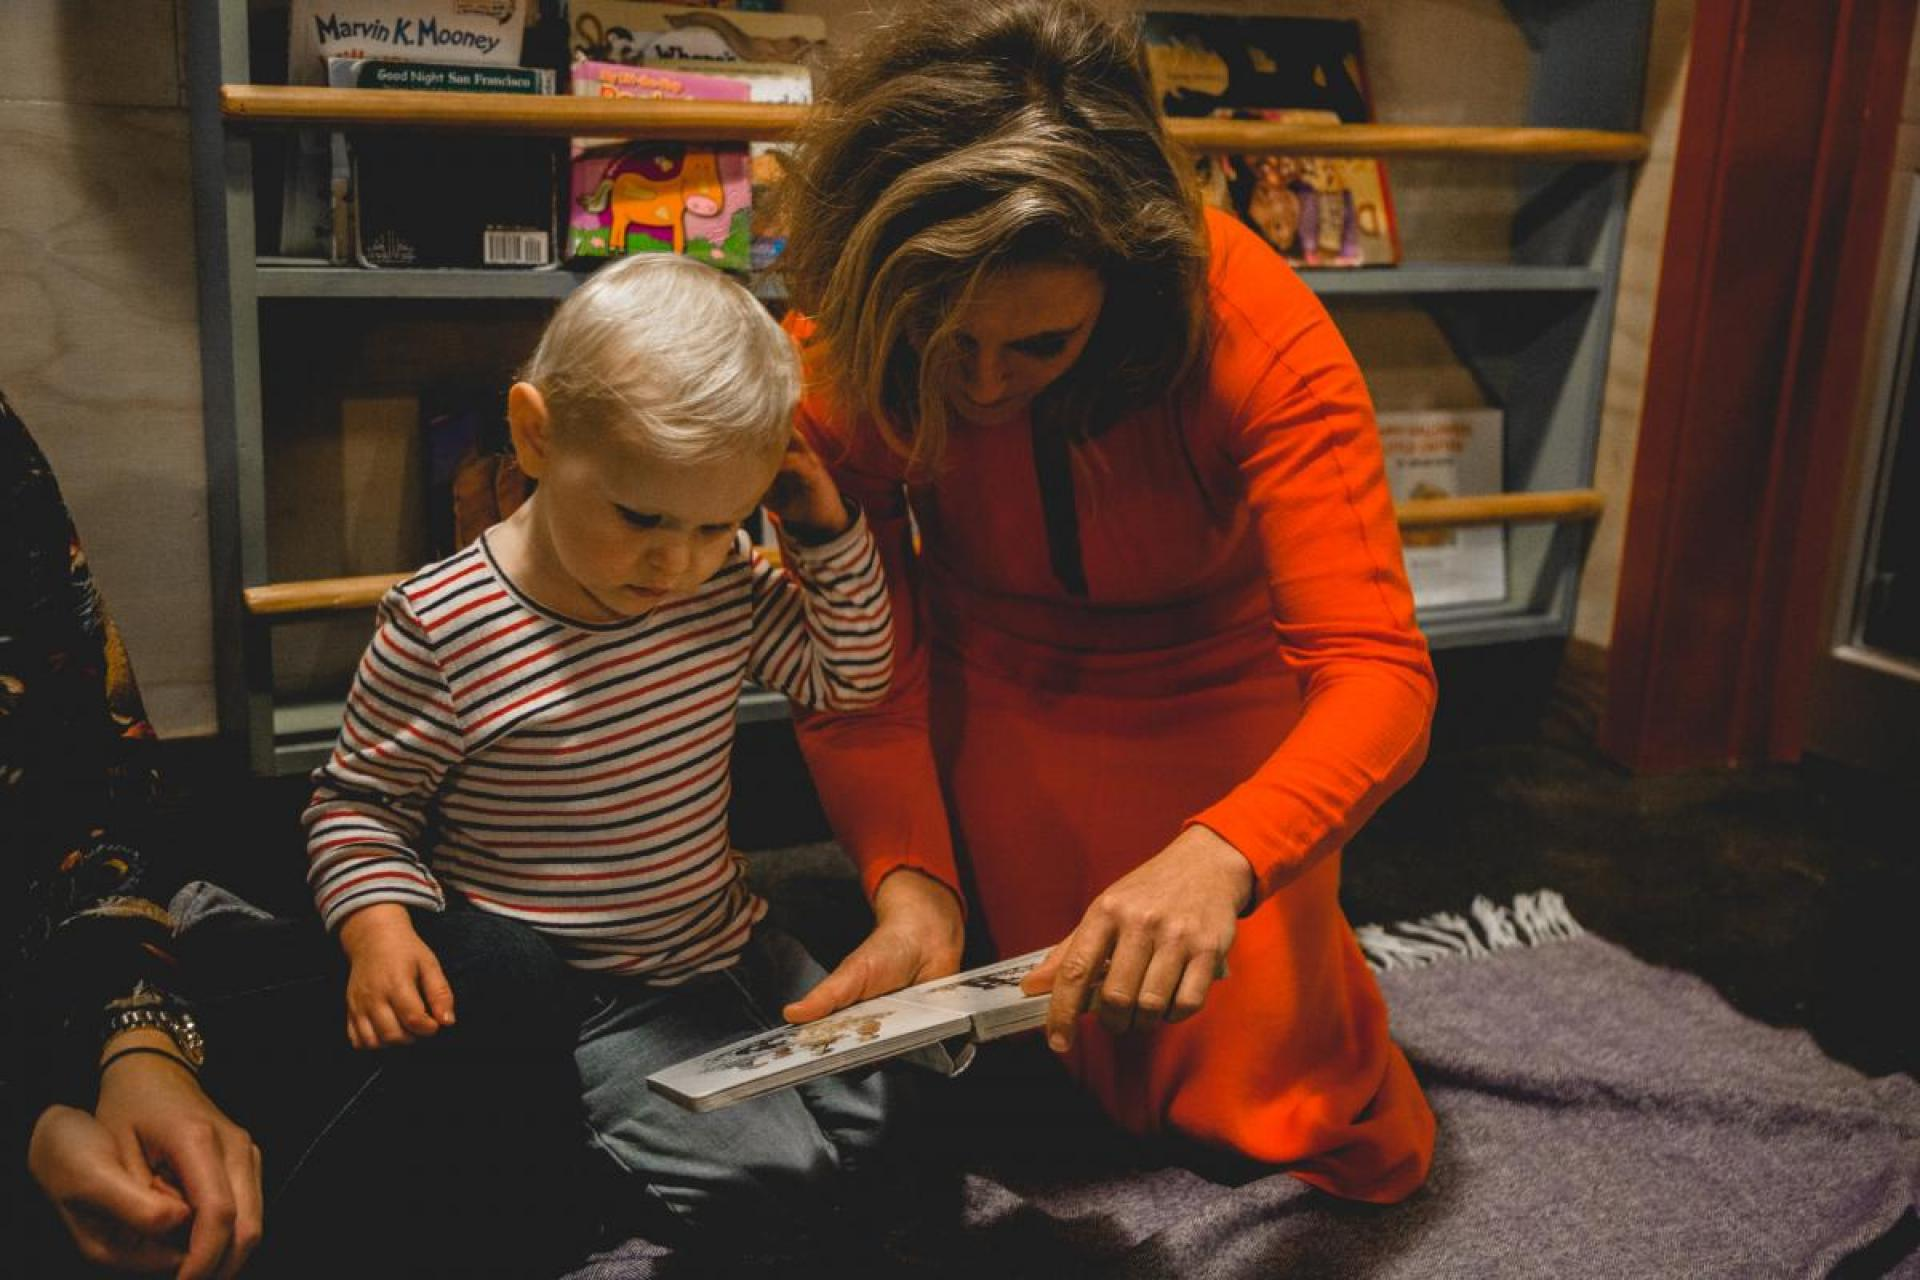 Photograph of Tift Merritt wearing a red dress, reading a book to her young daughter.